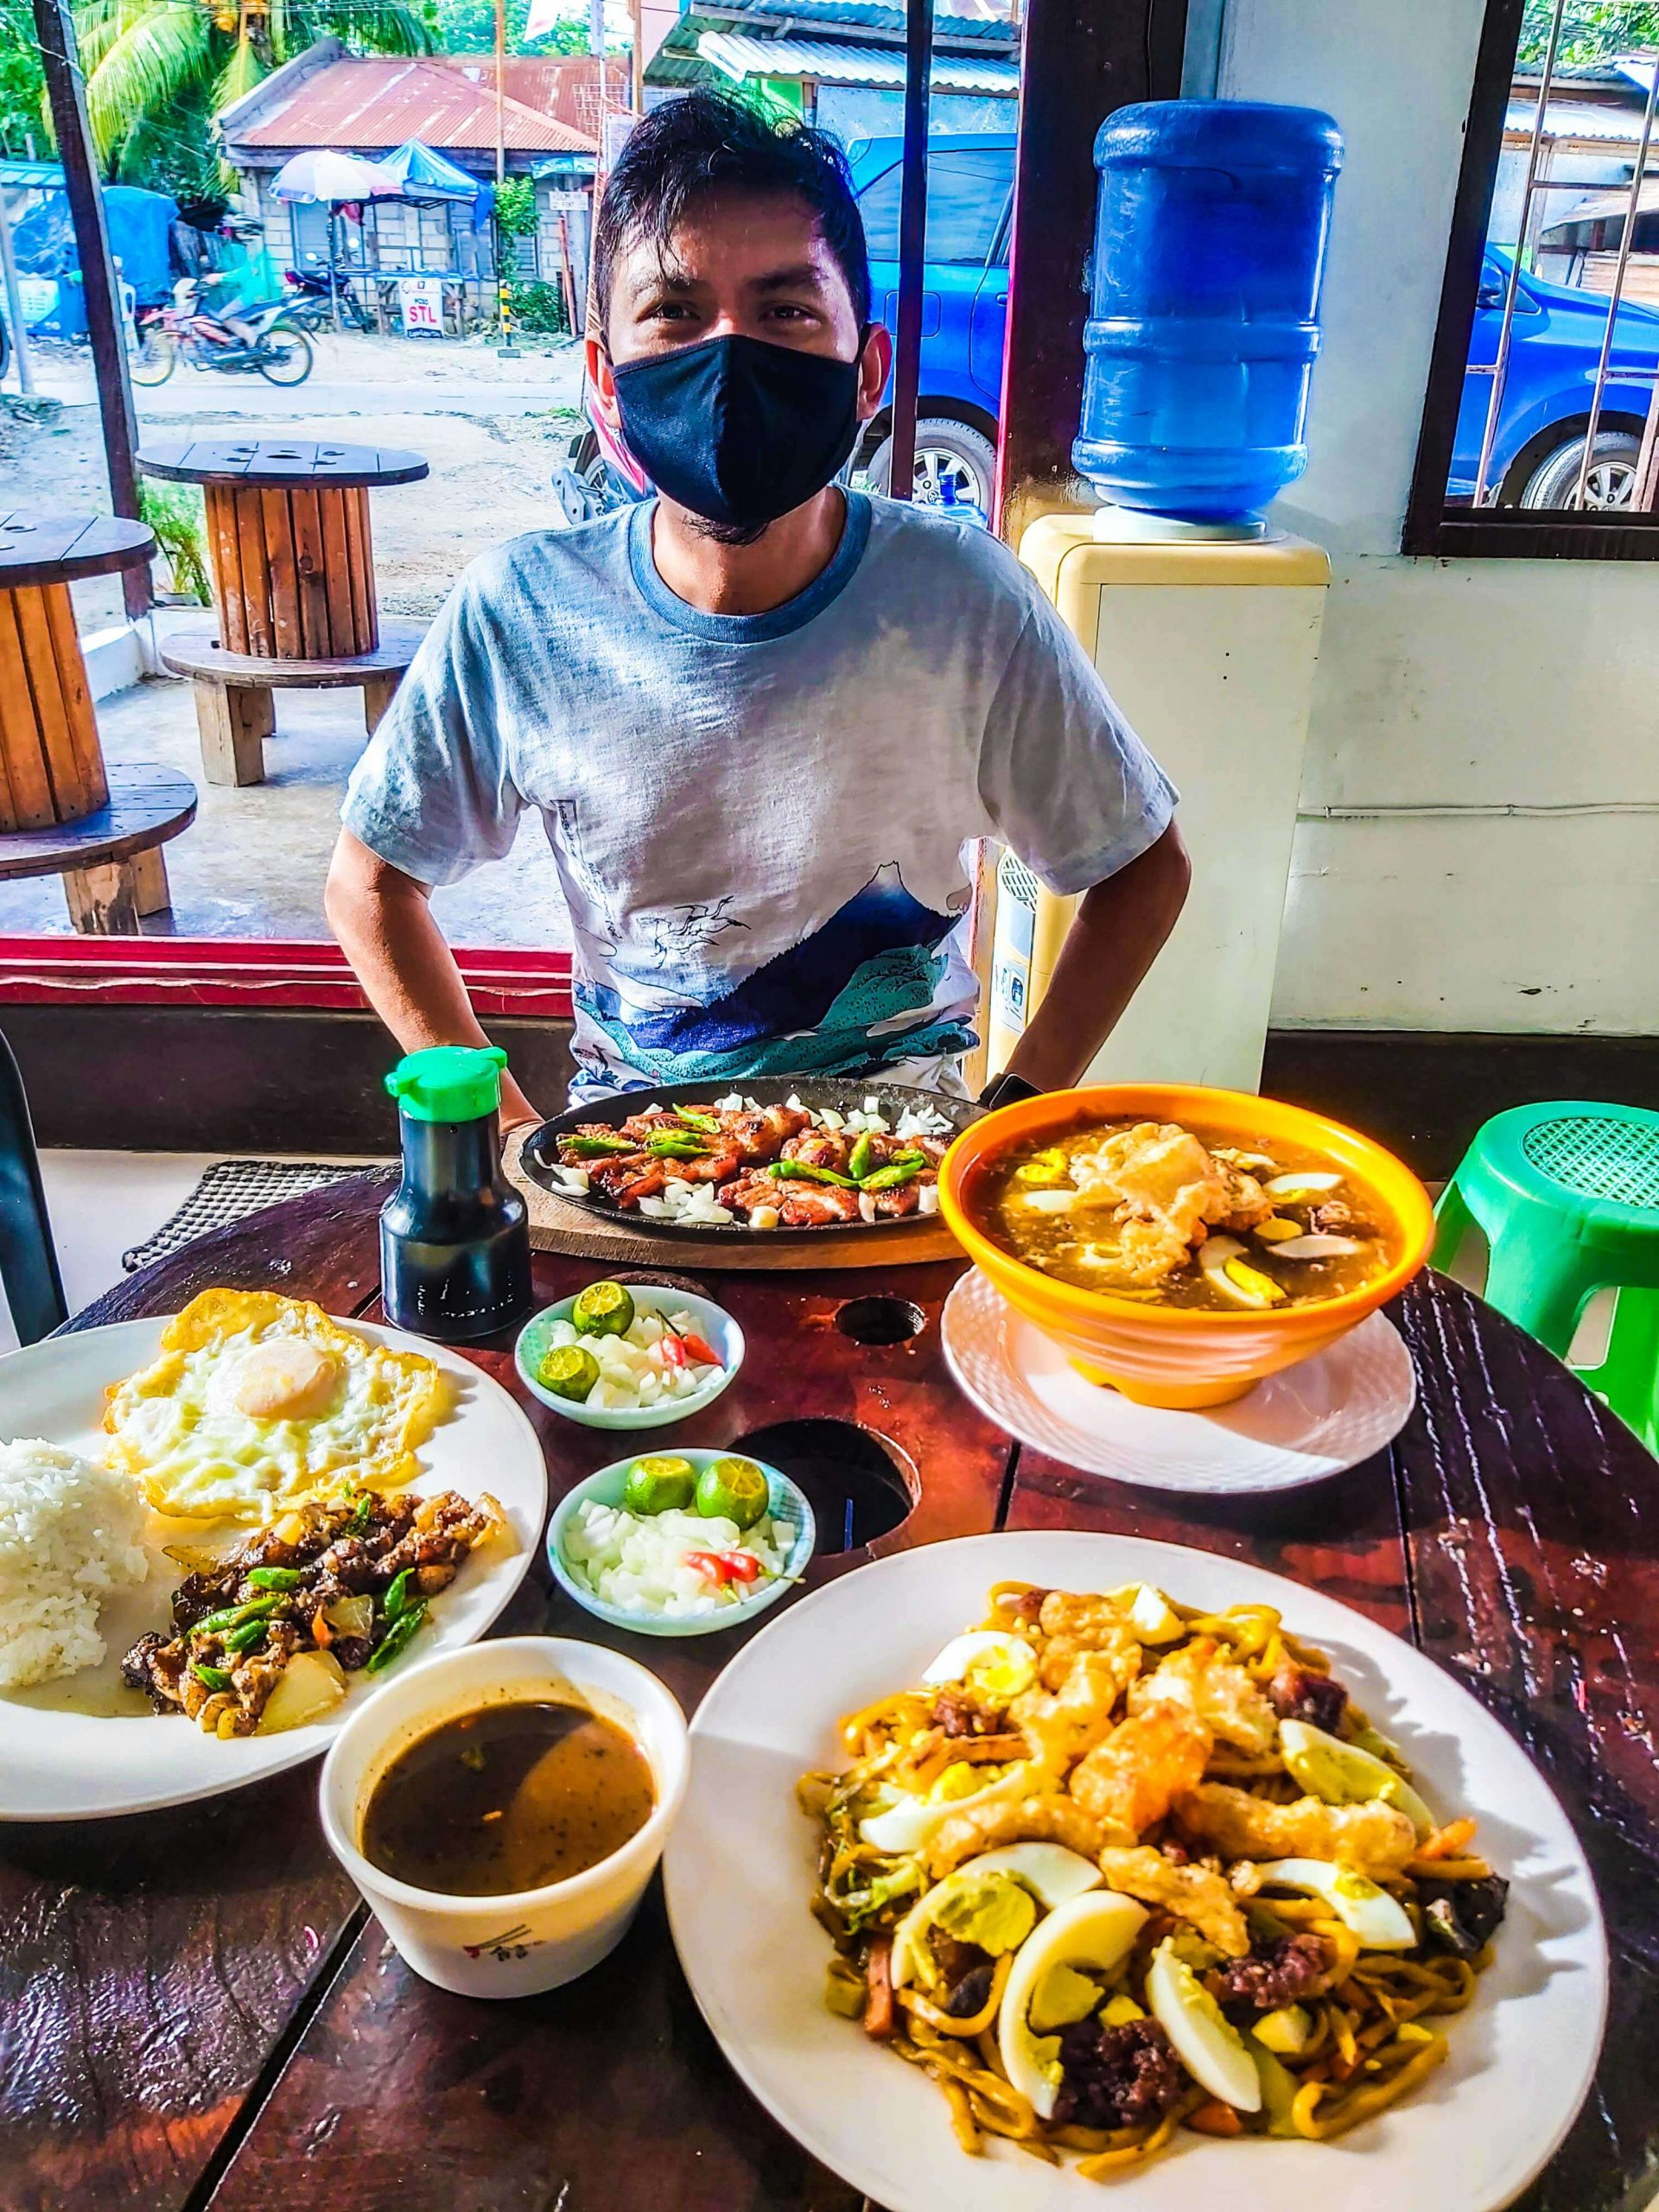 Lomi Boss is open air - which is perfect for the pandemic times that we're living in.